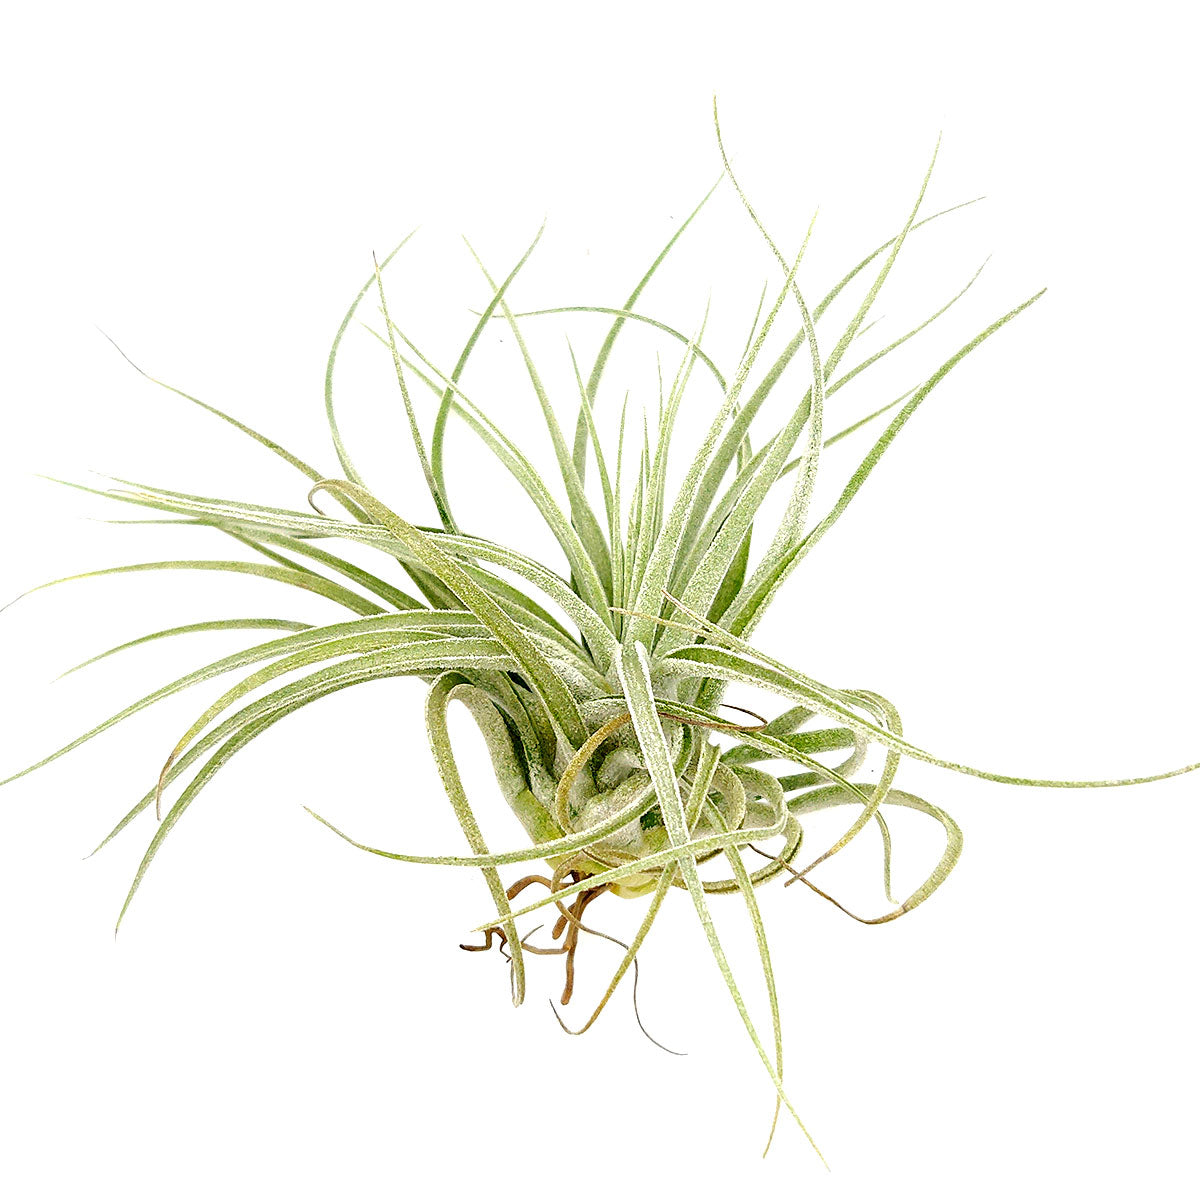 Tillandsia Velickiana air plant for sale, unique gift decor ideas, air plant subscription delivery monthly, Tillandsia Velickiana with air plant care guide